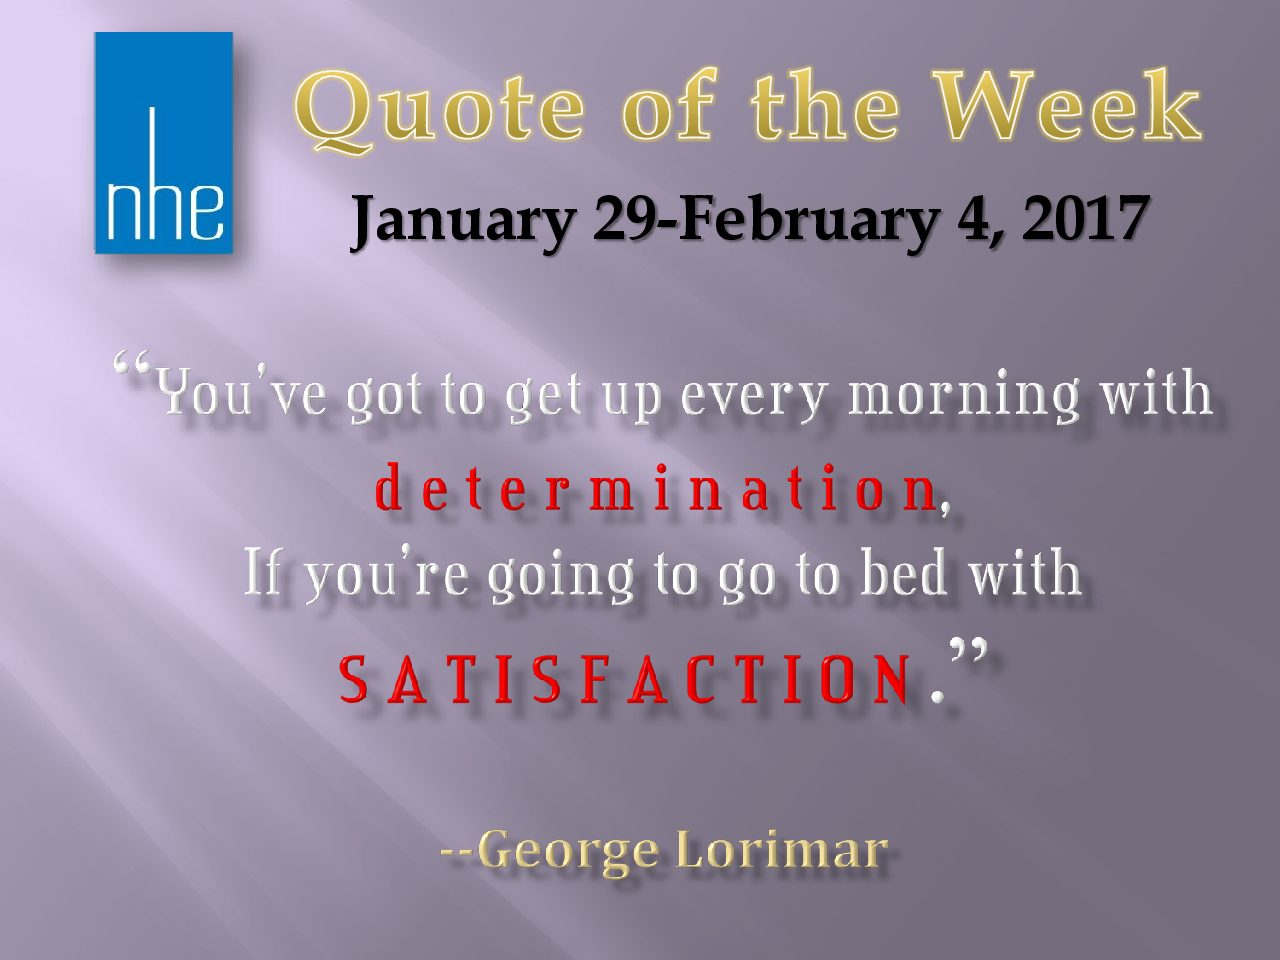 Quote of the Week January 22-28, 2017